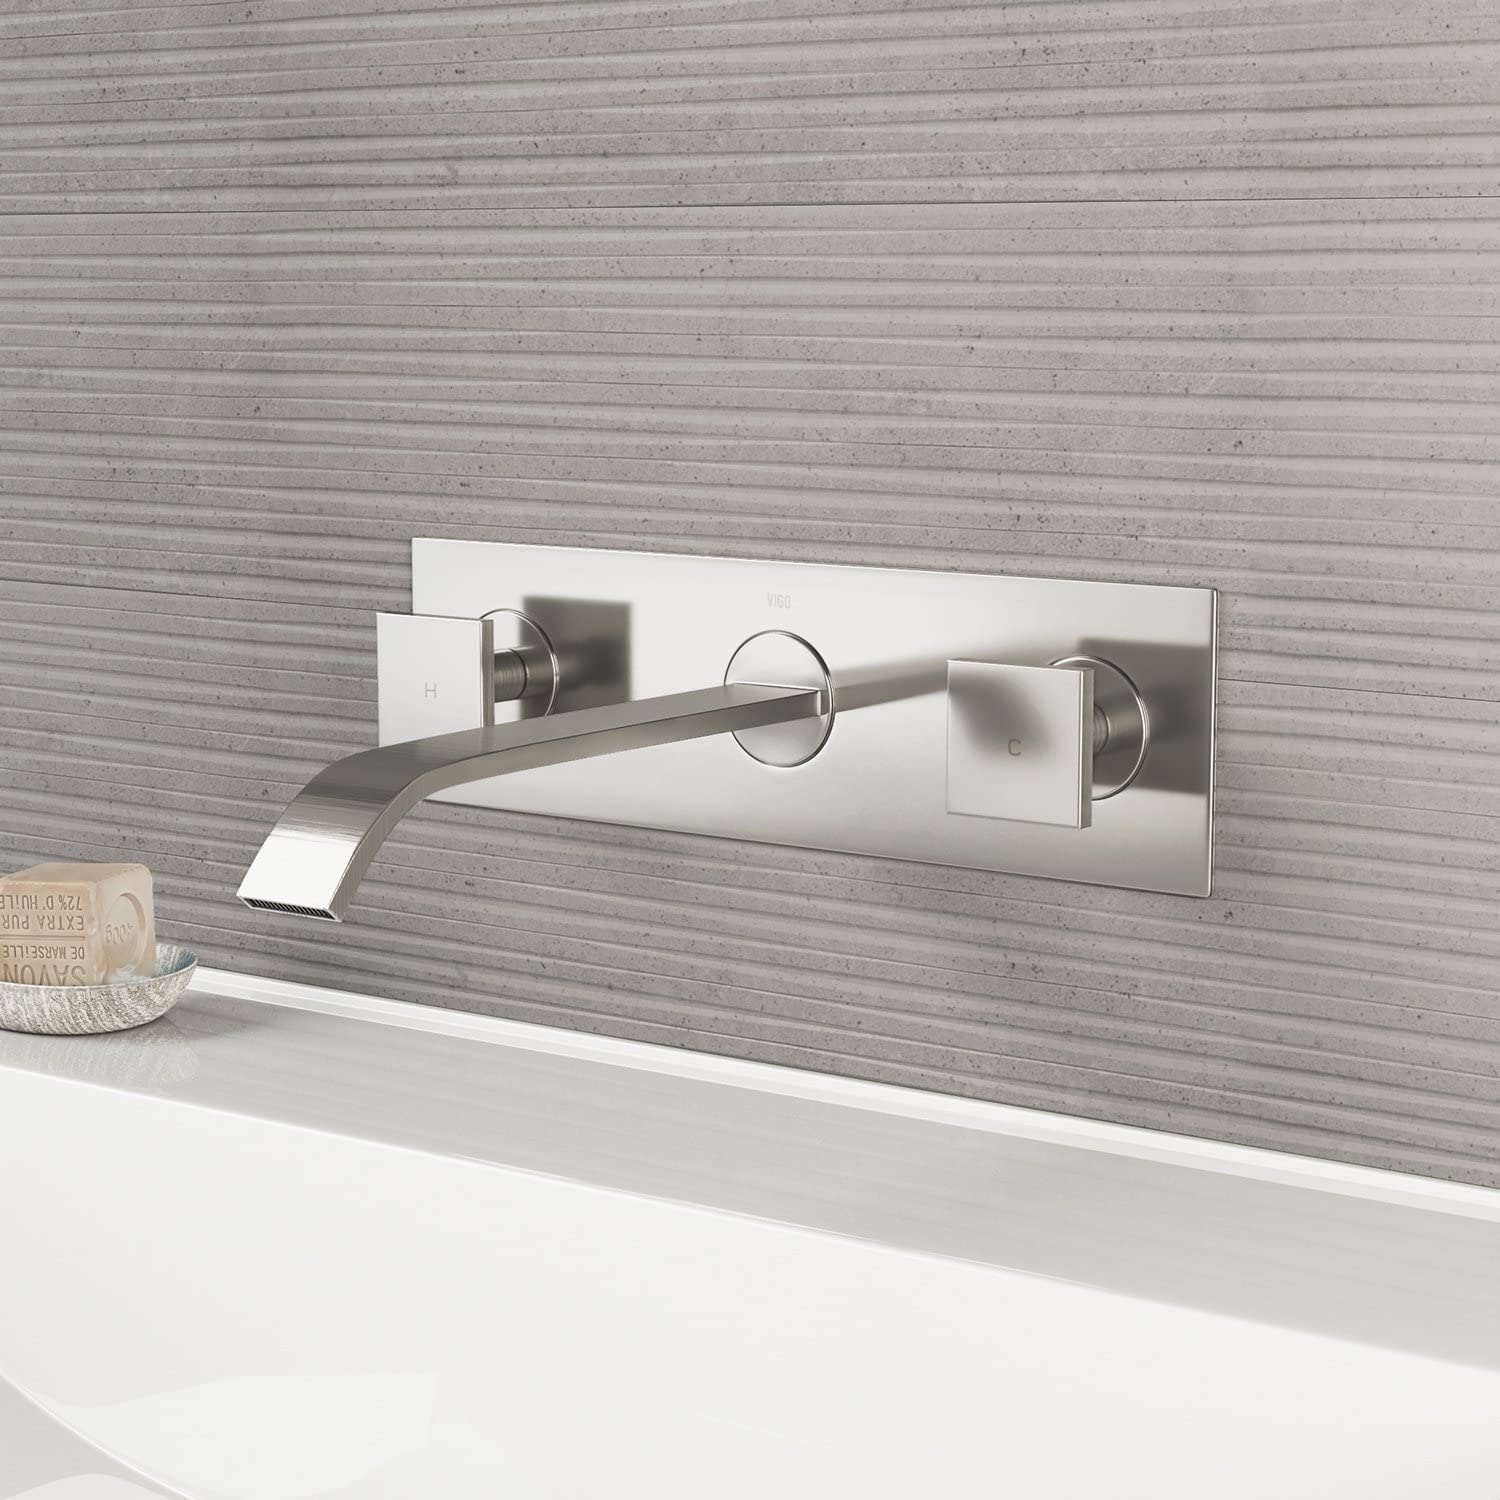 VIGO VG05002BN Titus Two Handle Wall Mount Bathroom Faucet, Brushed Nickel Lavatory Faucet, Unique Plated 7 Layer Finish